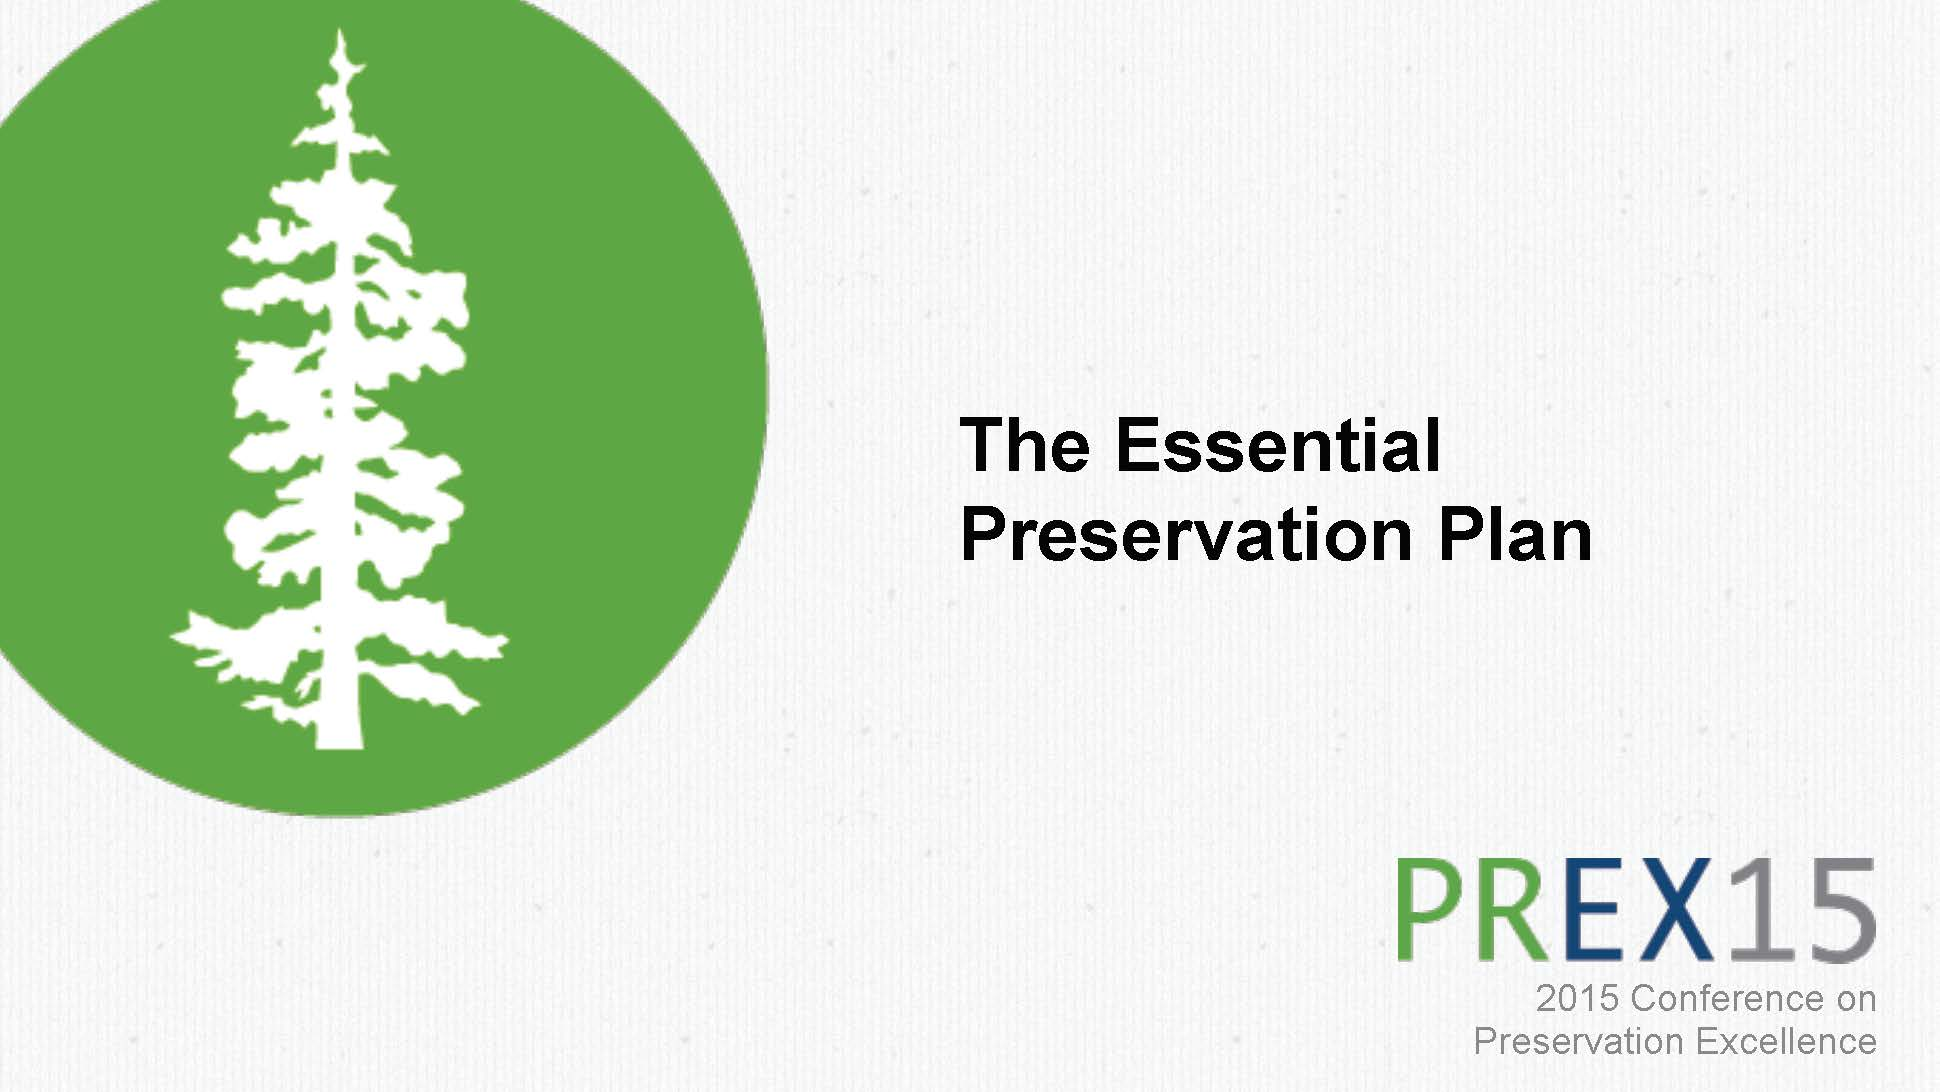 The Essential Preservation Plan